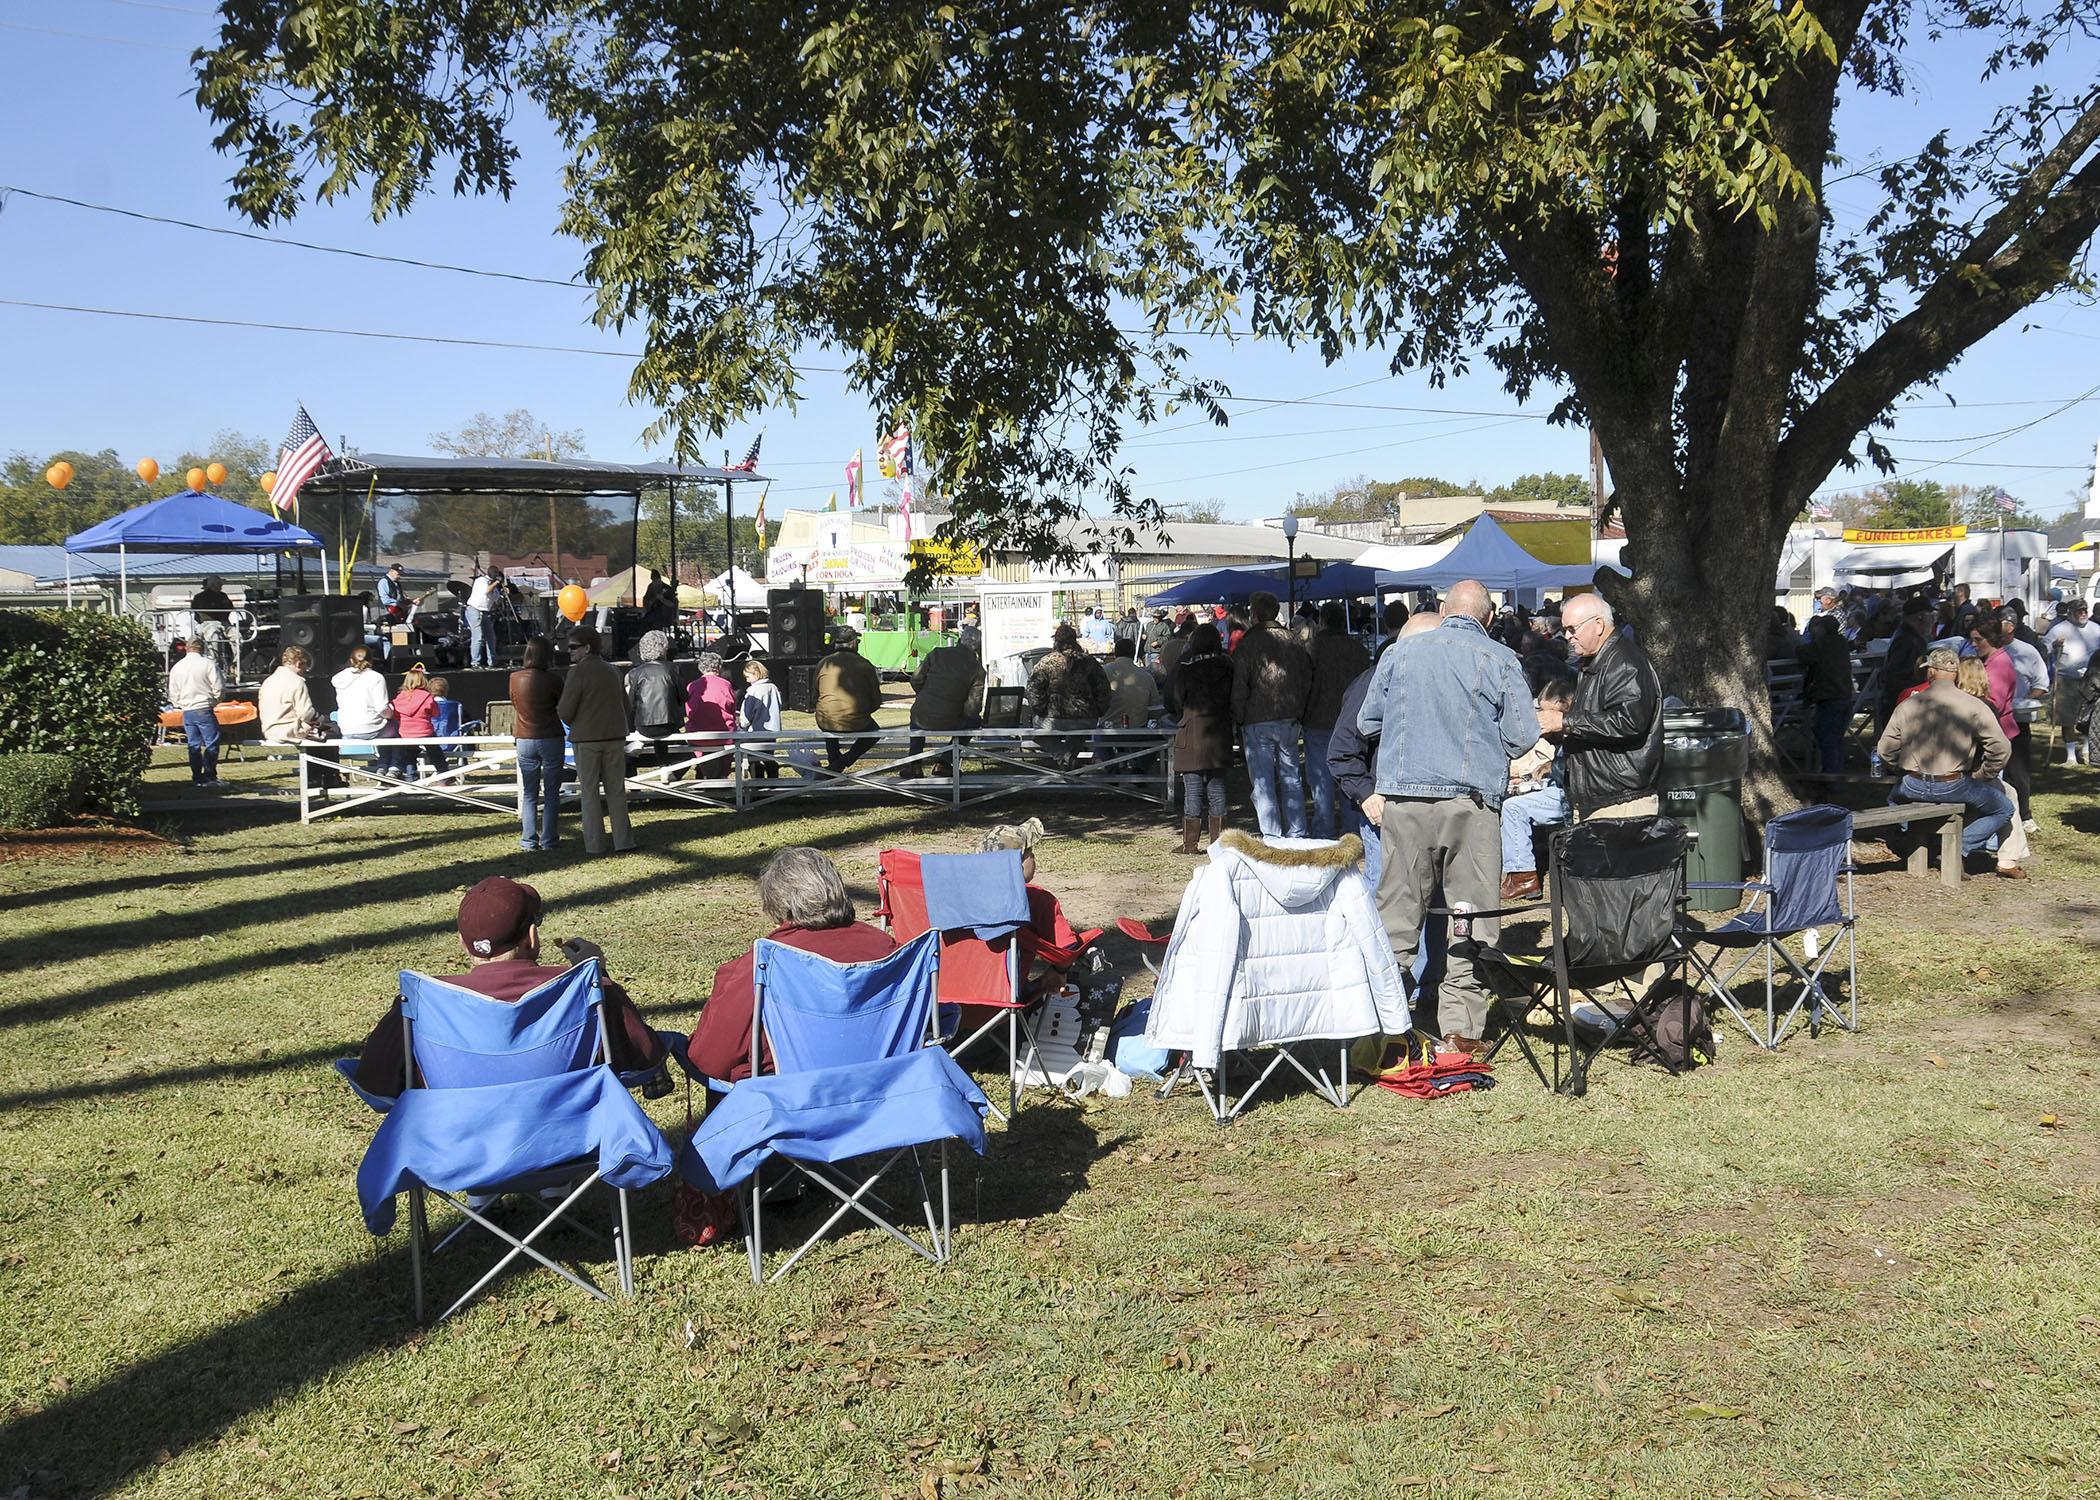 Festivals, such as the annual Sweet Potato Festival in Vardaman, can be significant sources of economic development for communities. (Photo by MSU Ag Communications/Scott Corey)